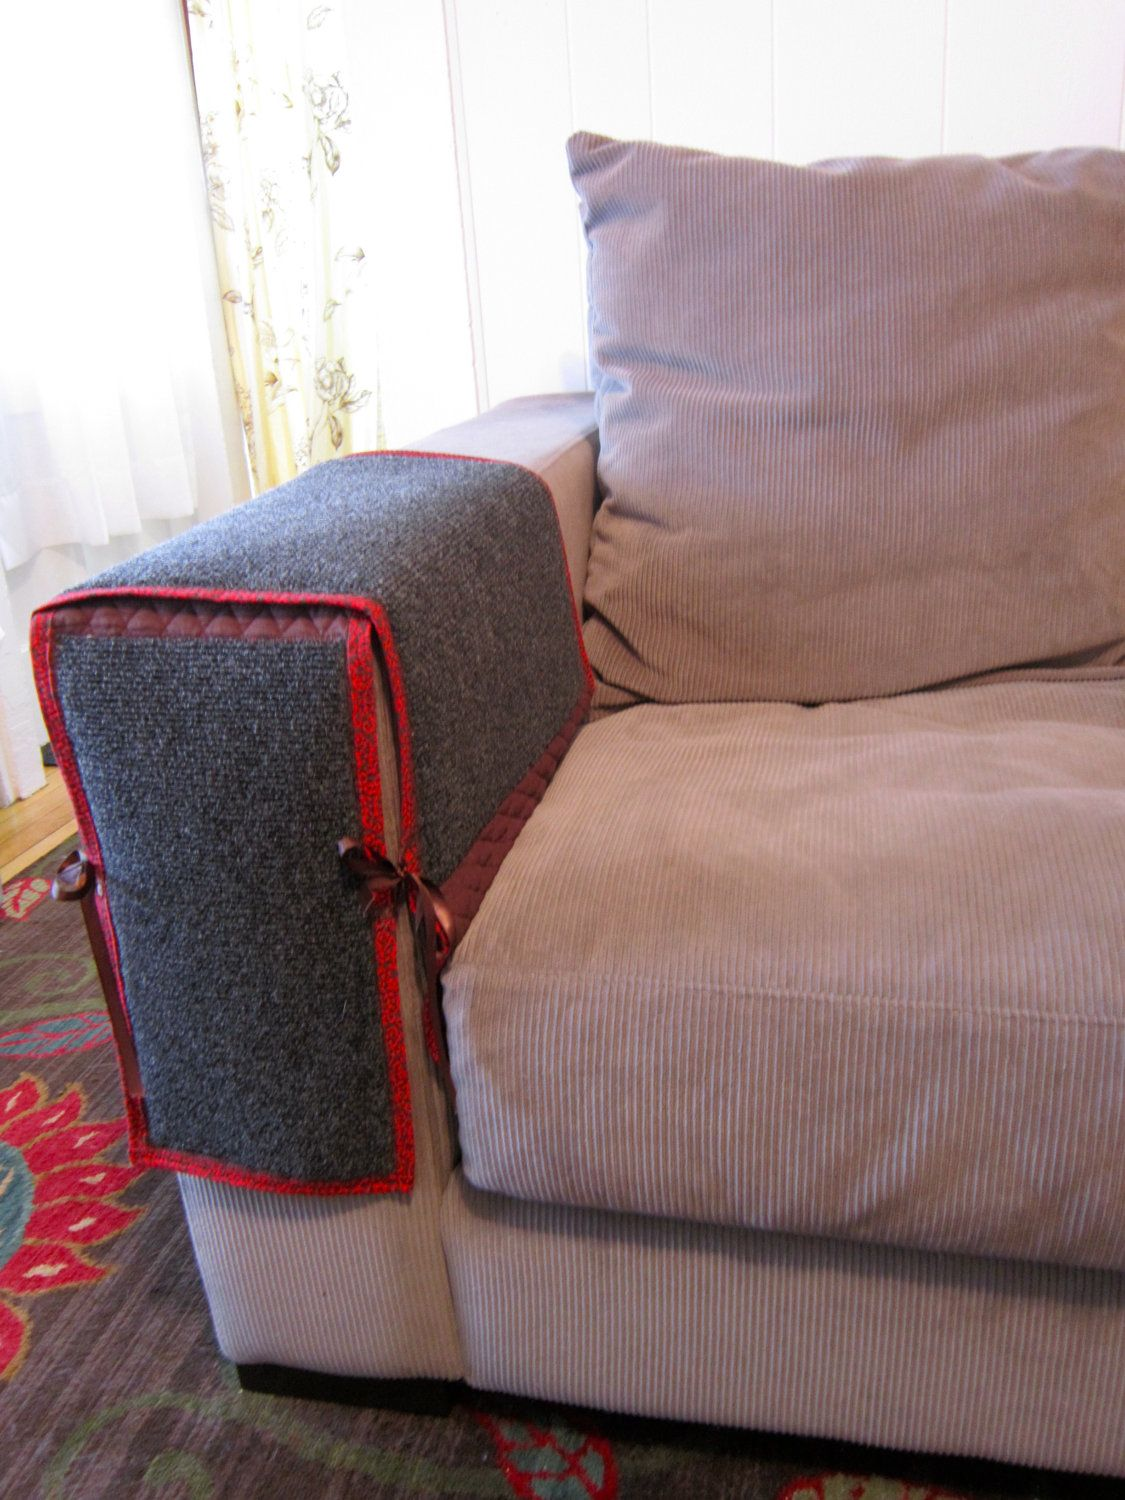 Cat Scratching Couch Or Chair Arm Protection Via Etsy Cat